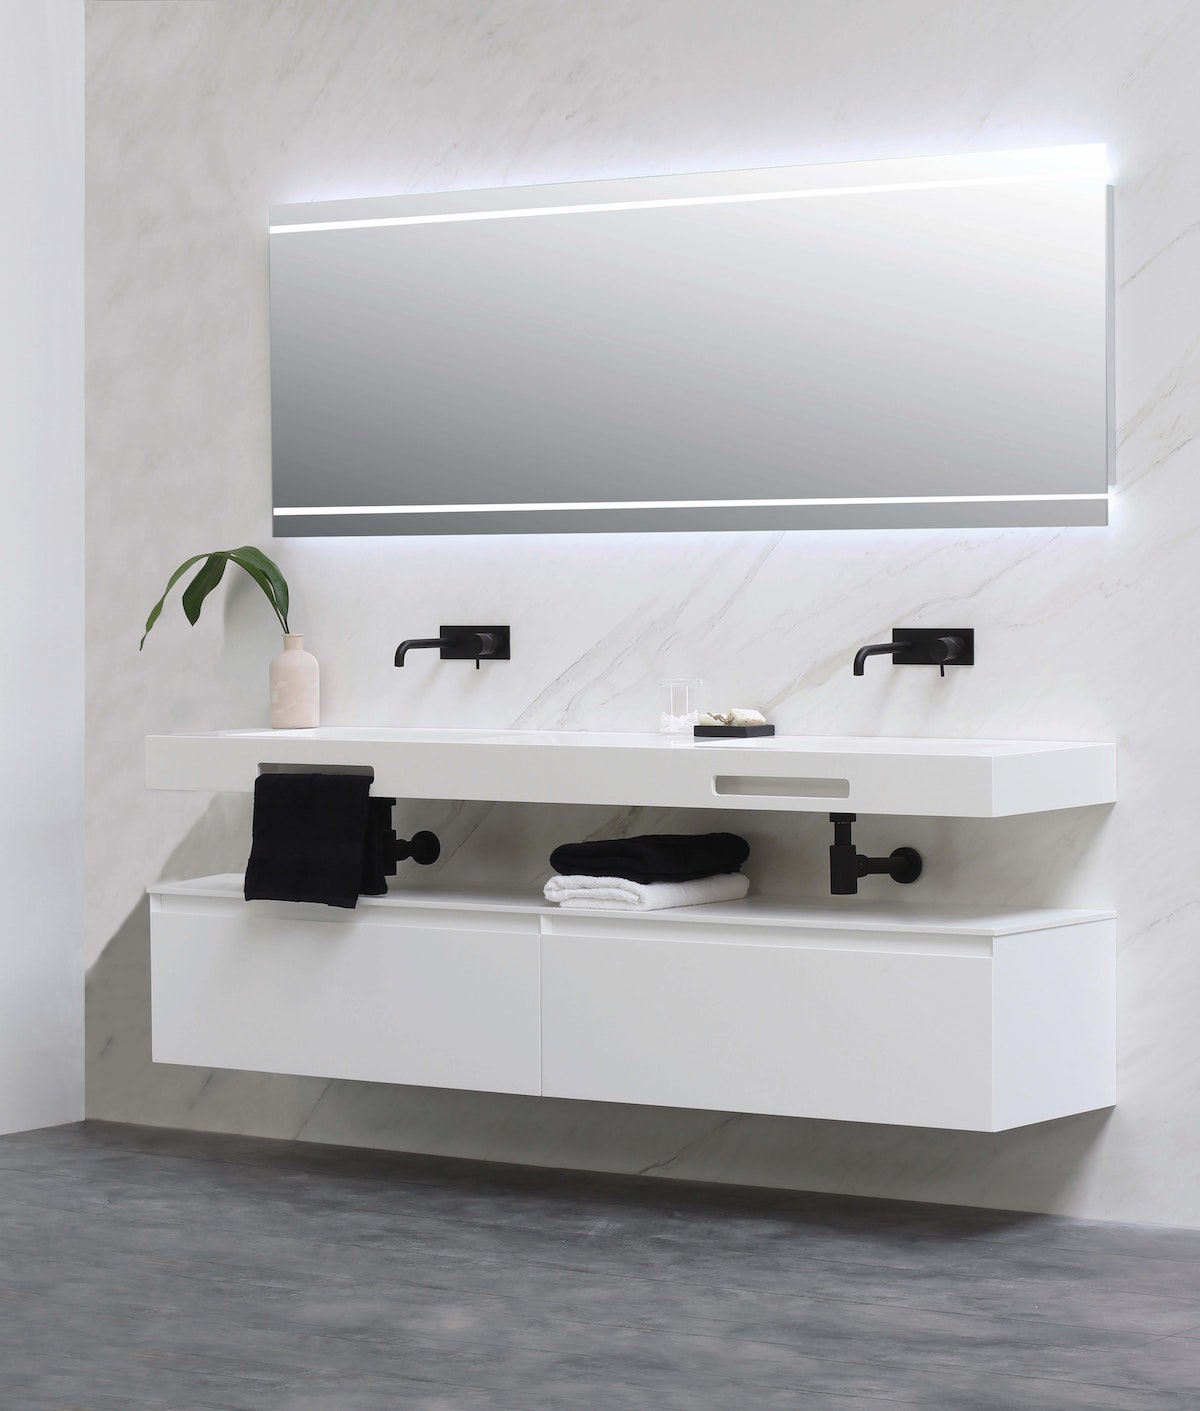 Mounted Bathroom Counter with Storage